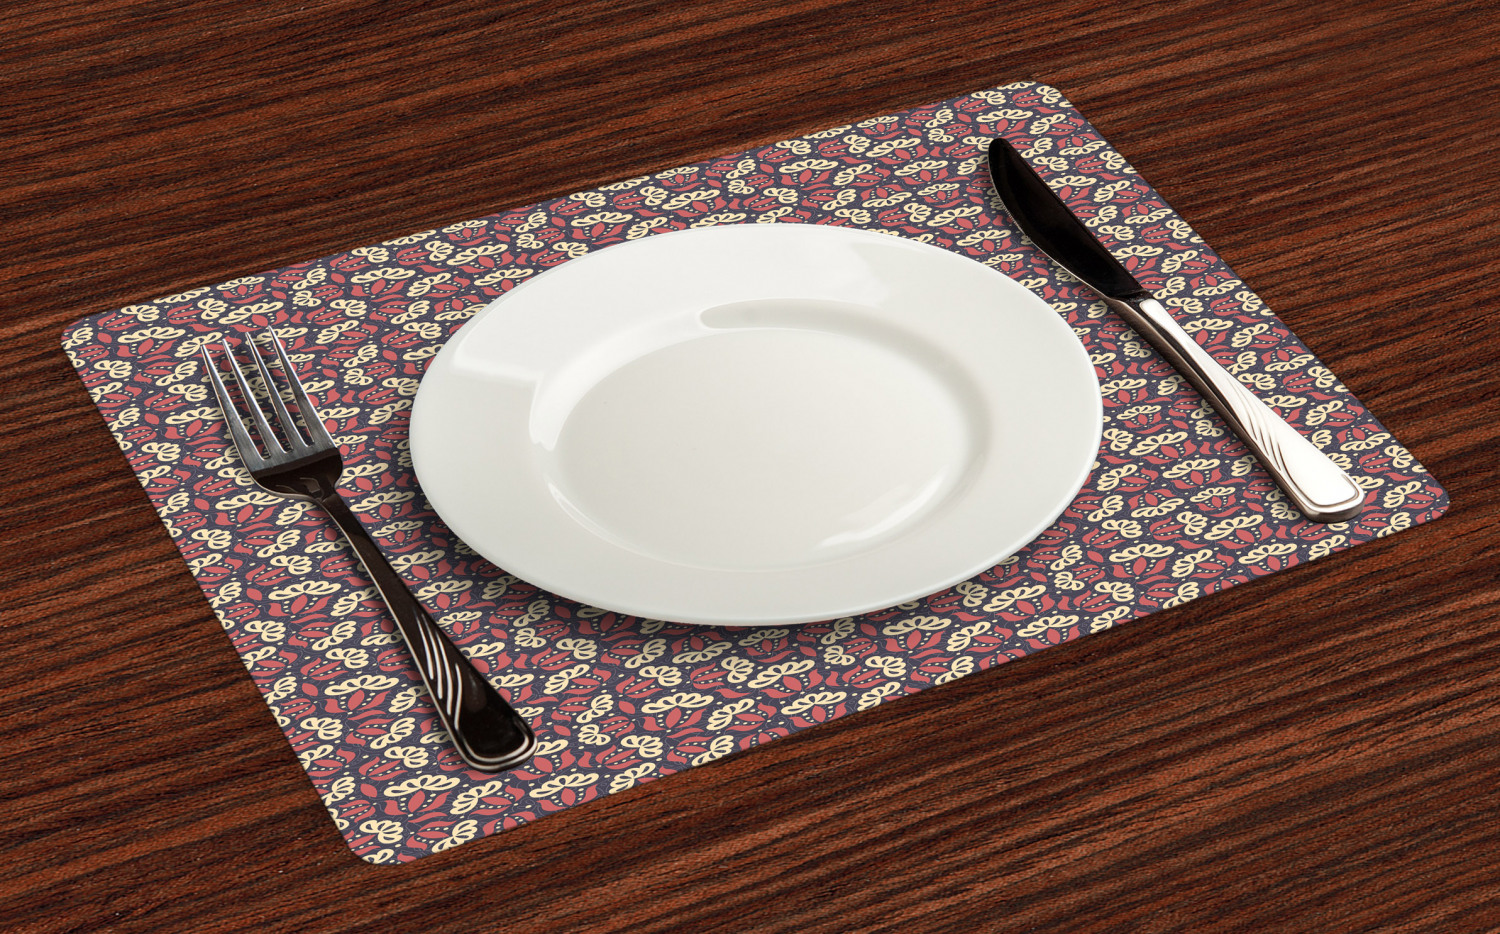 Ambesonne-Flower-Pattern-Placemat-Set-of-4-Fabric-Place-Mats-for-Table-Decor thumbnail 209